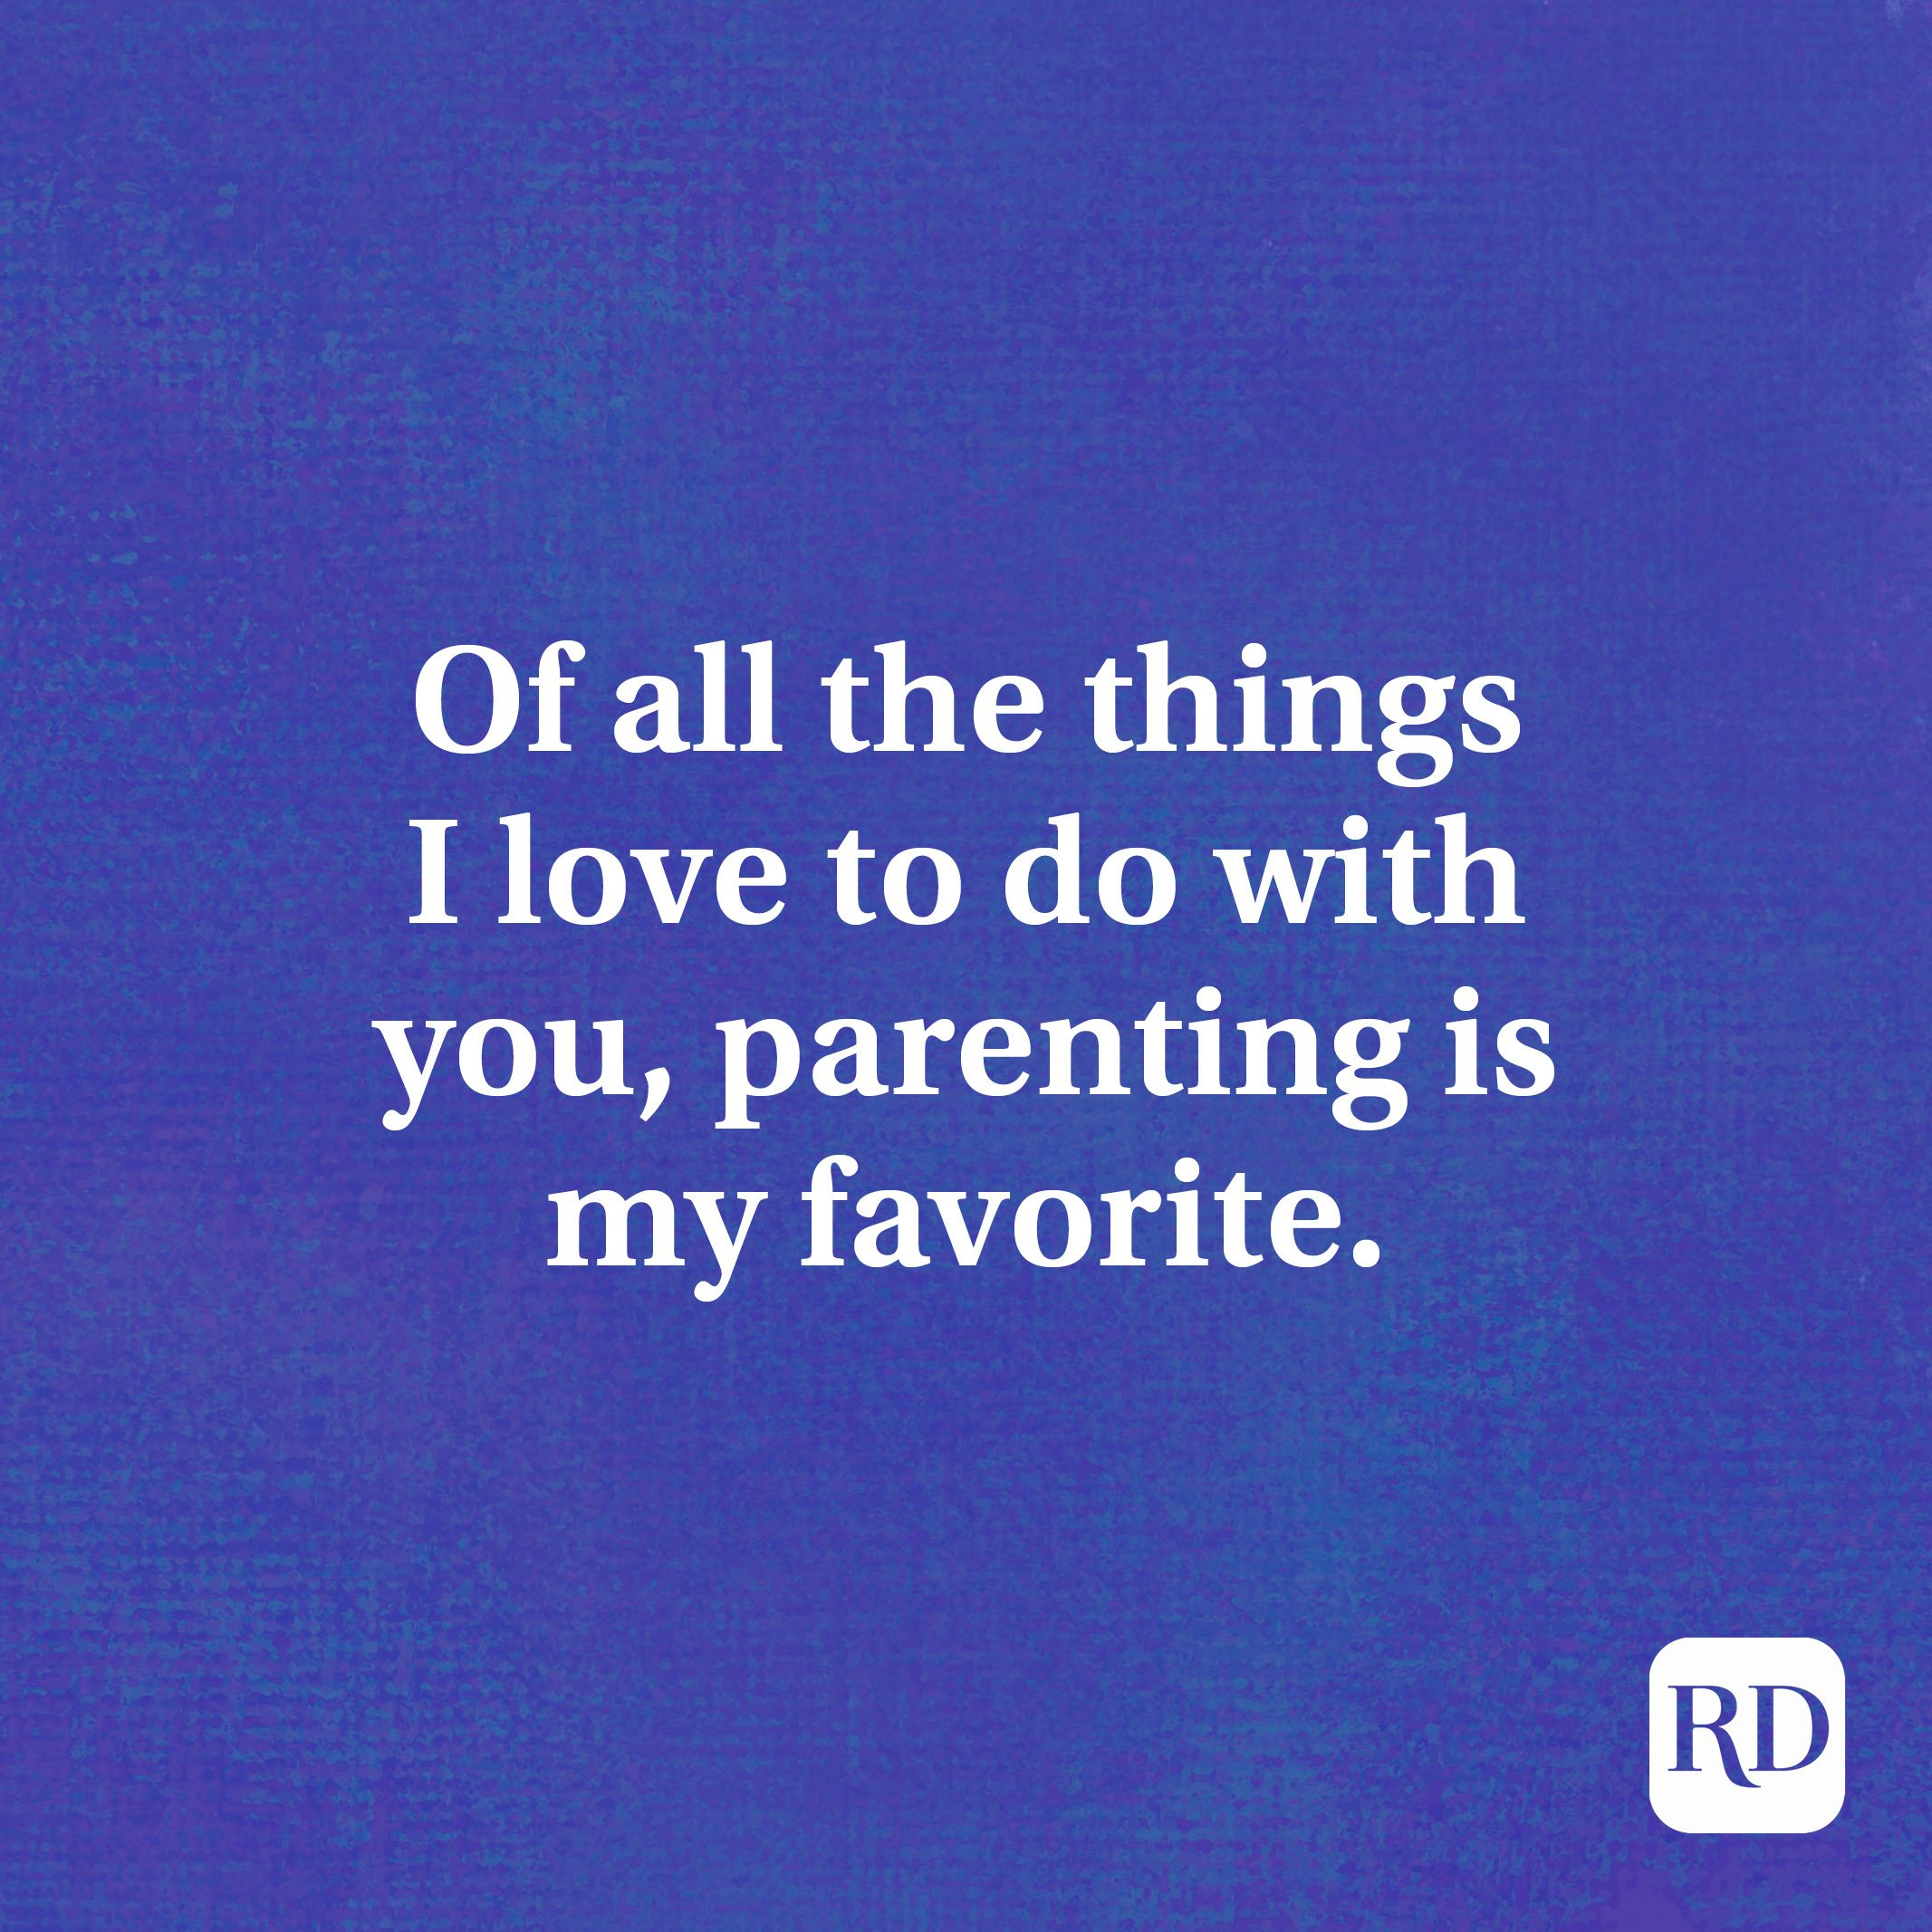 Of all the things I love to do with you, parenting is my favorite.